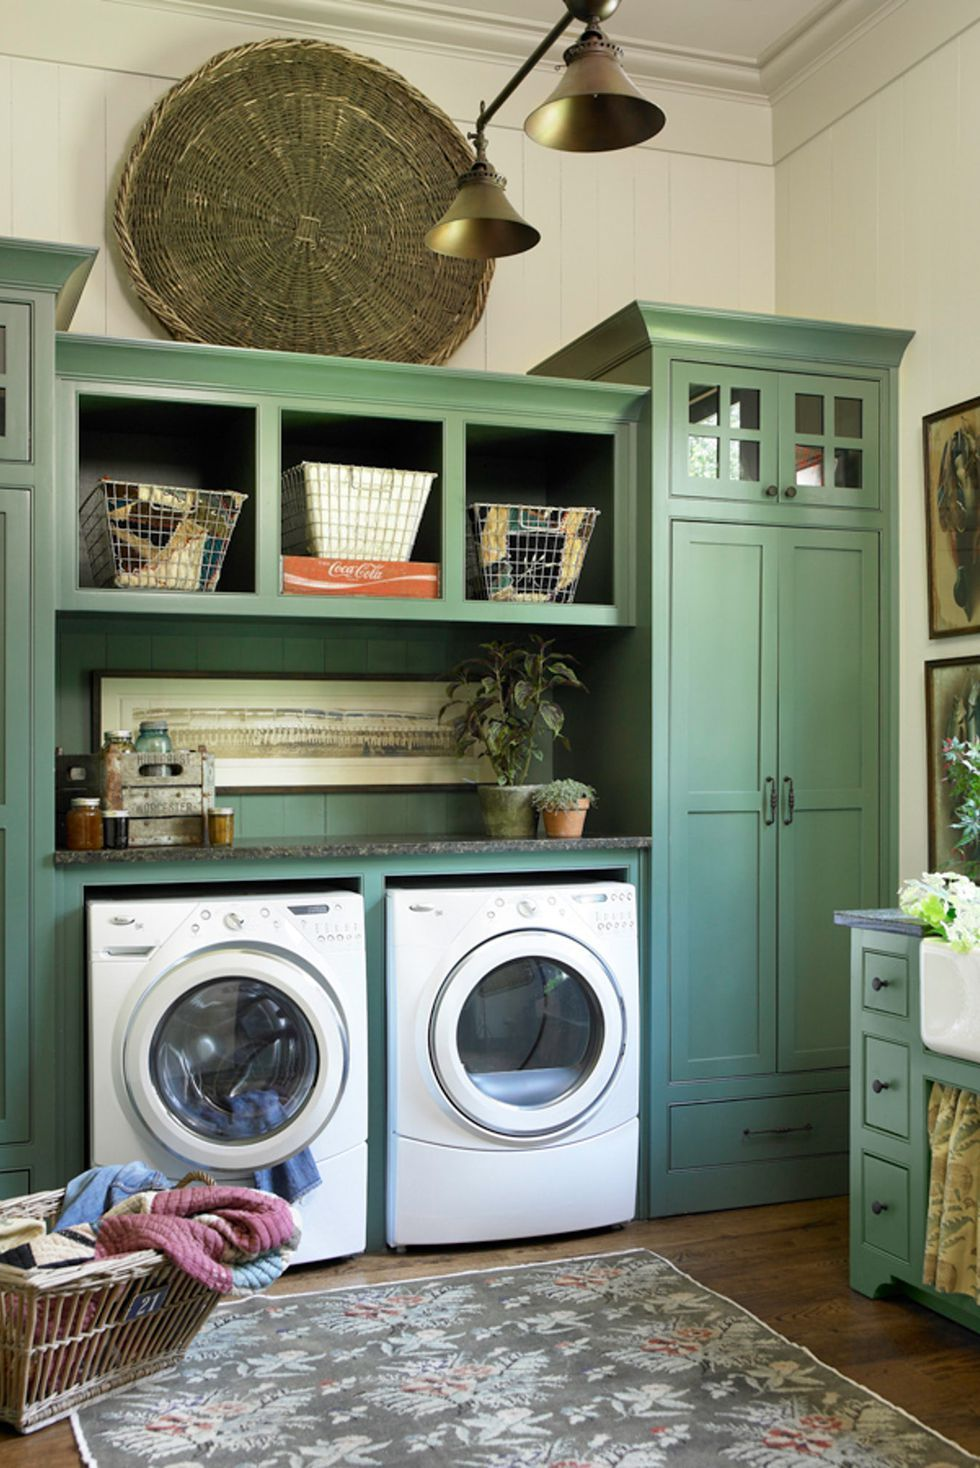 15 Brilliant Design Ideas For Small Laundry Rooms With Images